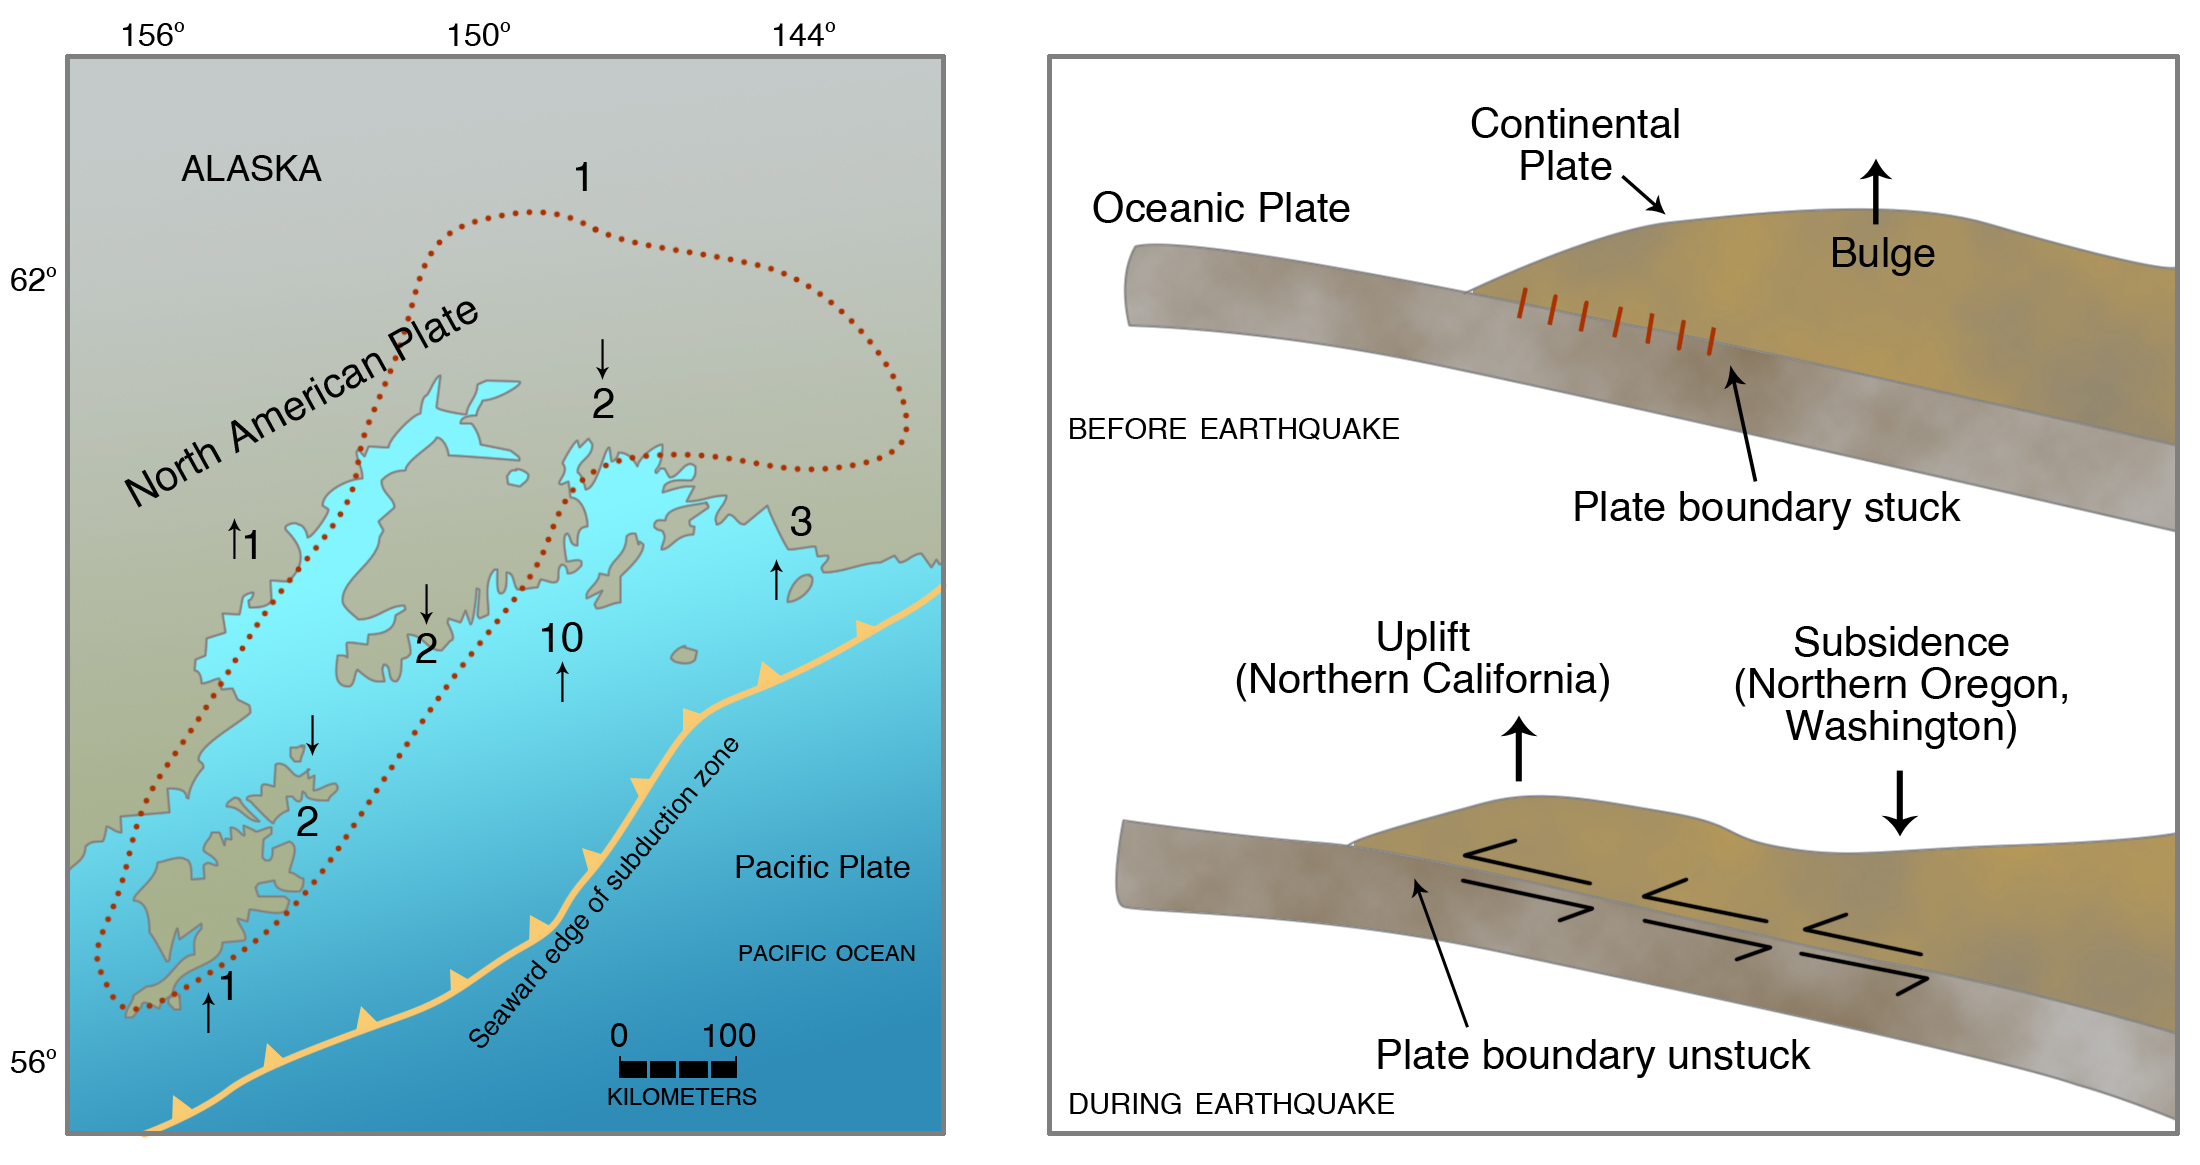 (Right) Cross section showing buildup of elastic strain in North American continental edge before an earthquake, then sudden release (elastic rebound) during earthquake, causing the outermost part of upper plate to go up and an inner part to go down